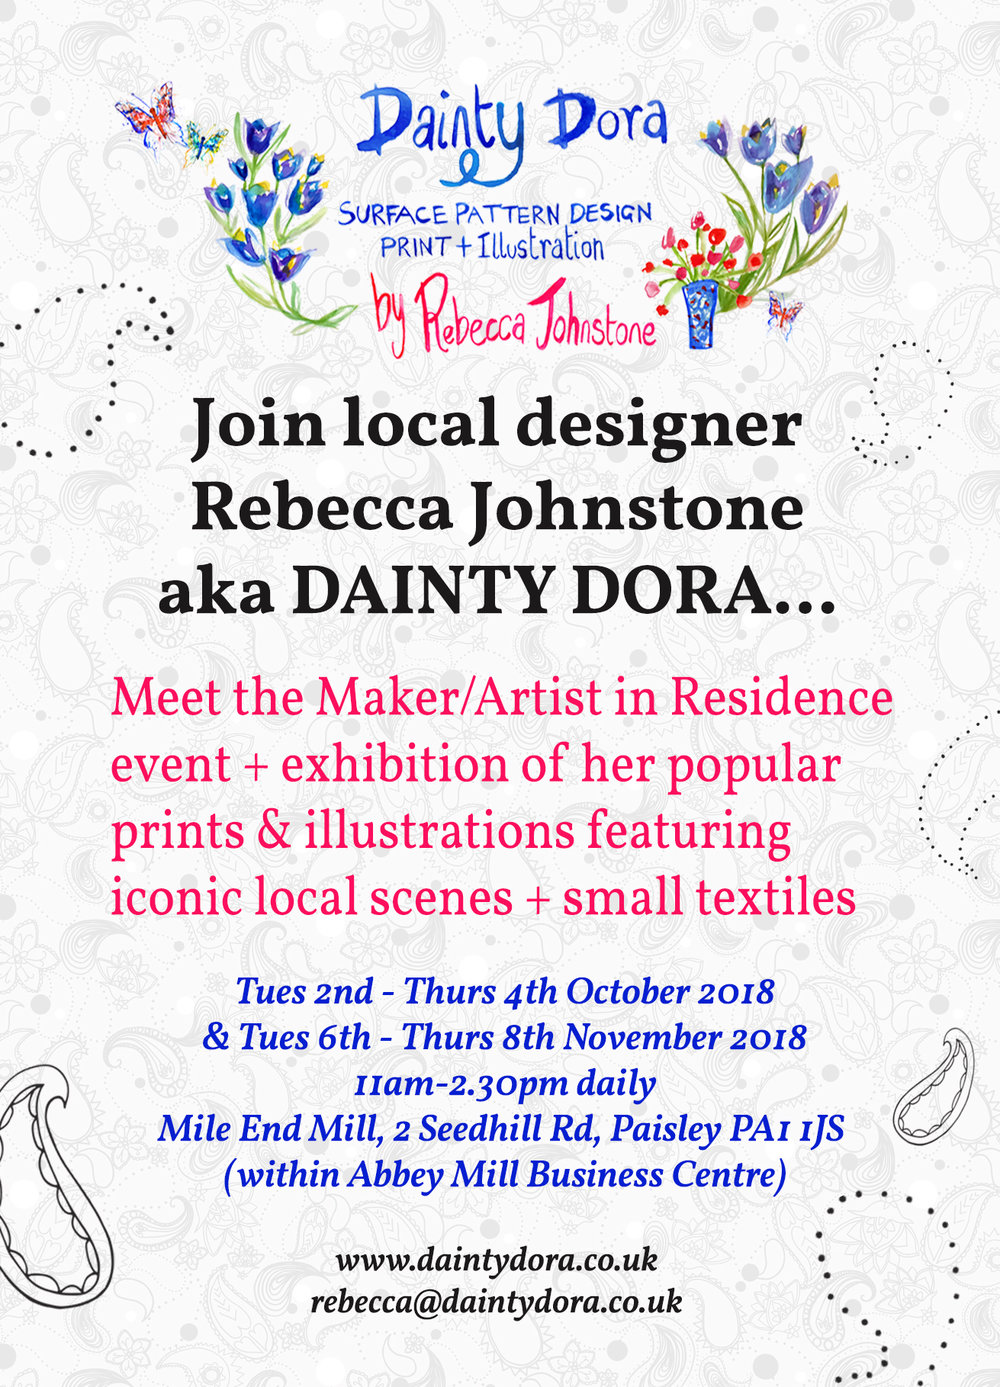 Mile End Mill artist in residence exhibition event, Rebecca Johnstone aka Dainty Dora